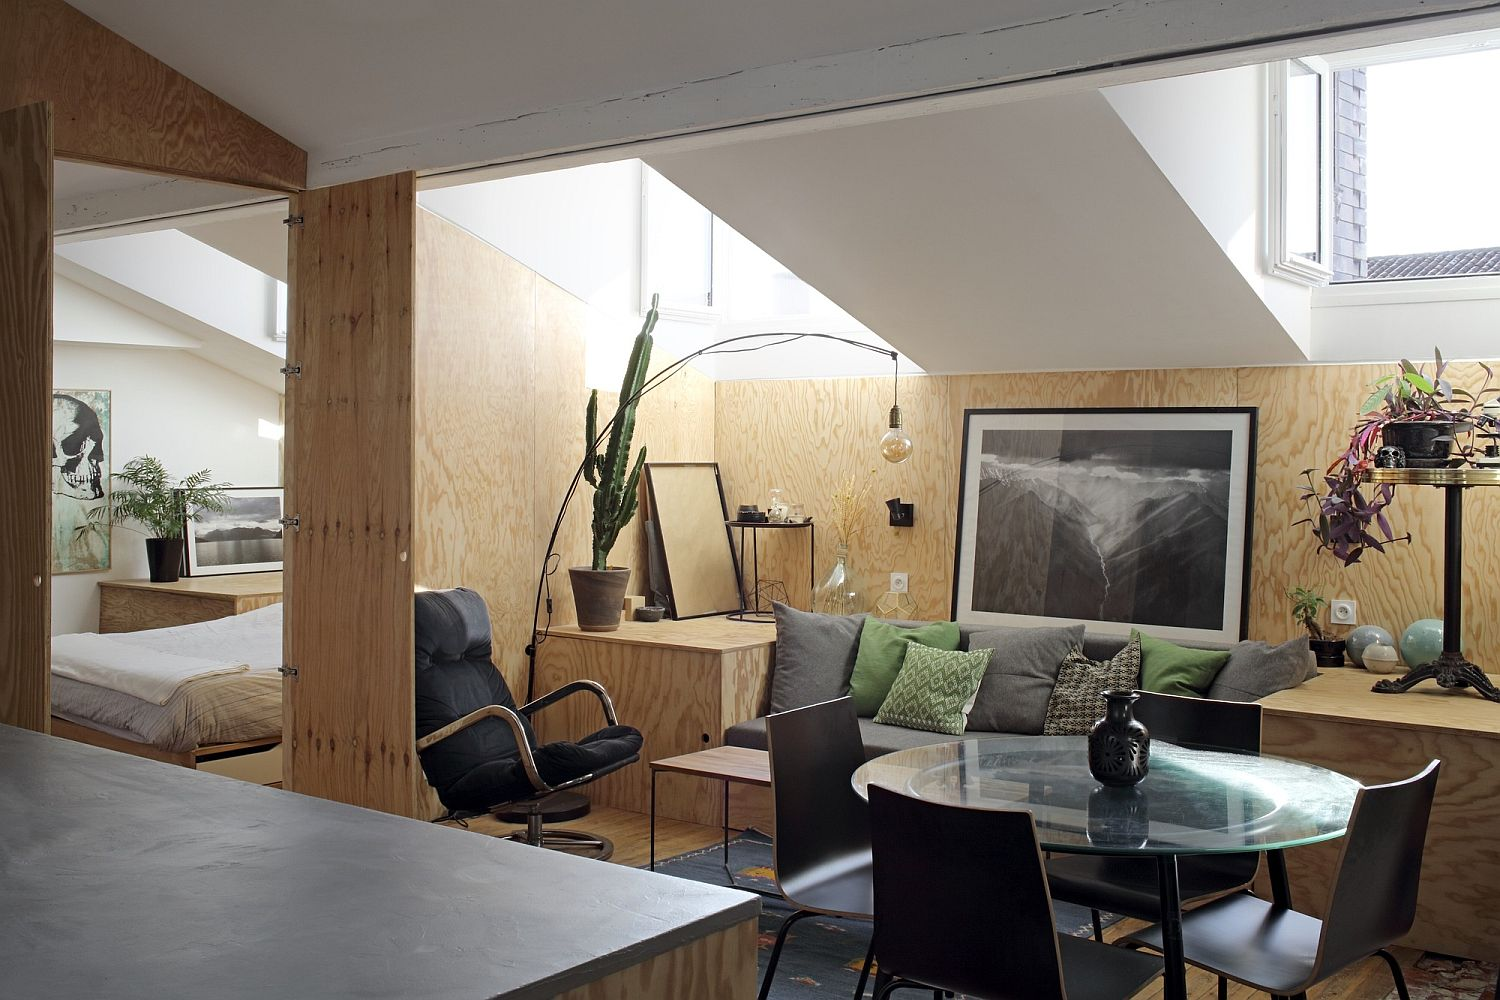 Custom wooden platform inside the apartment transforms into different decor pieces with ease